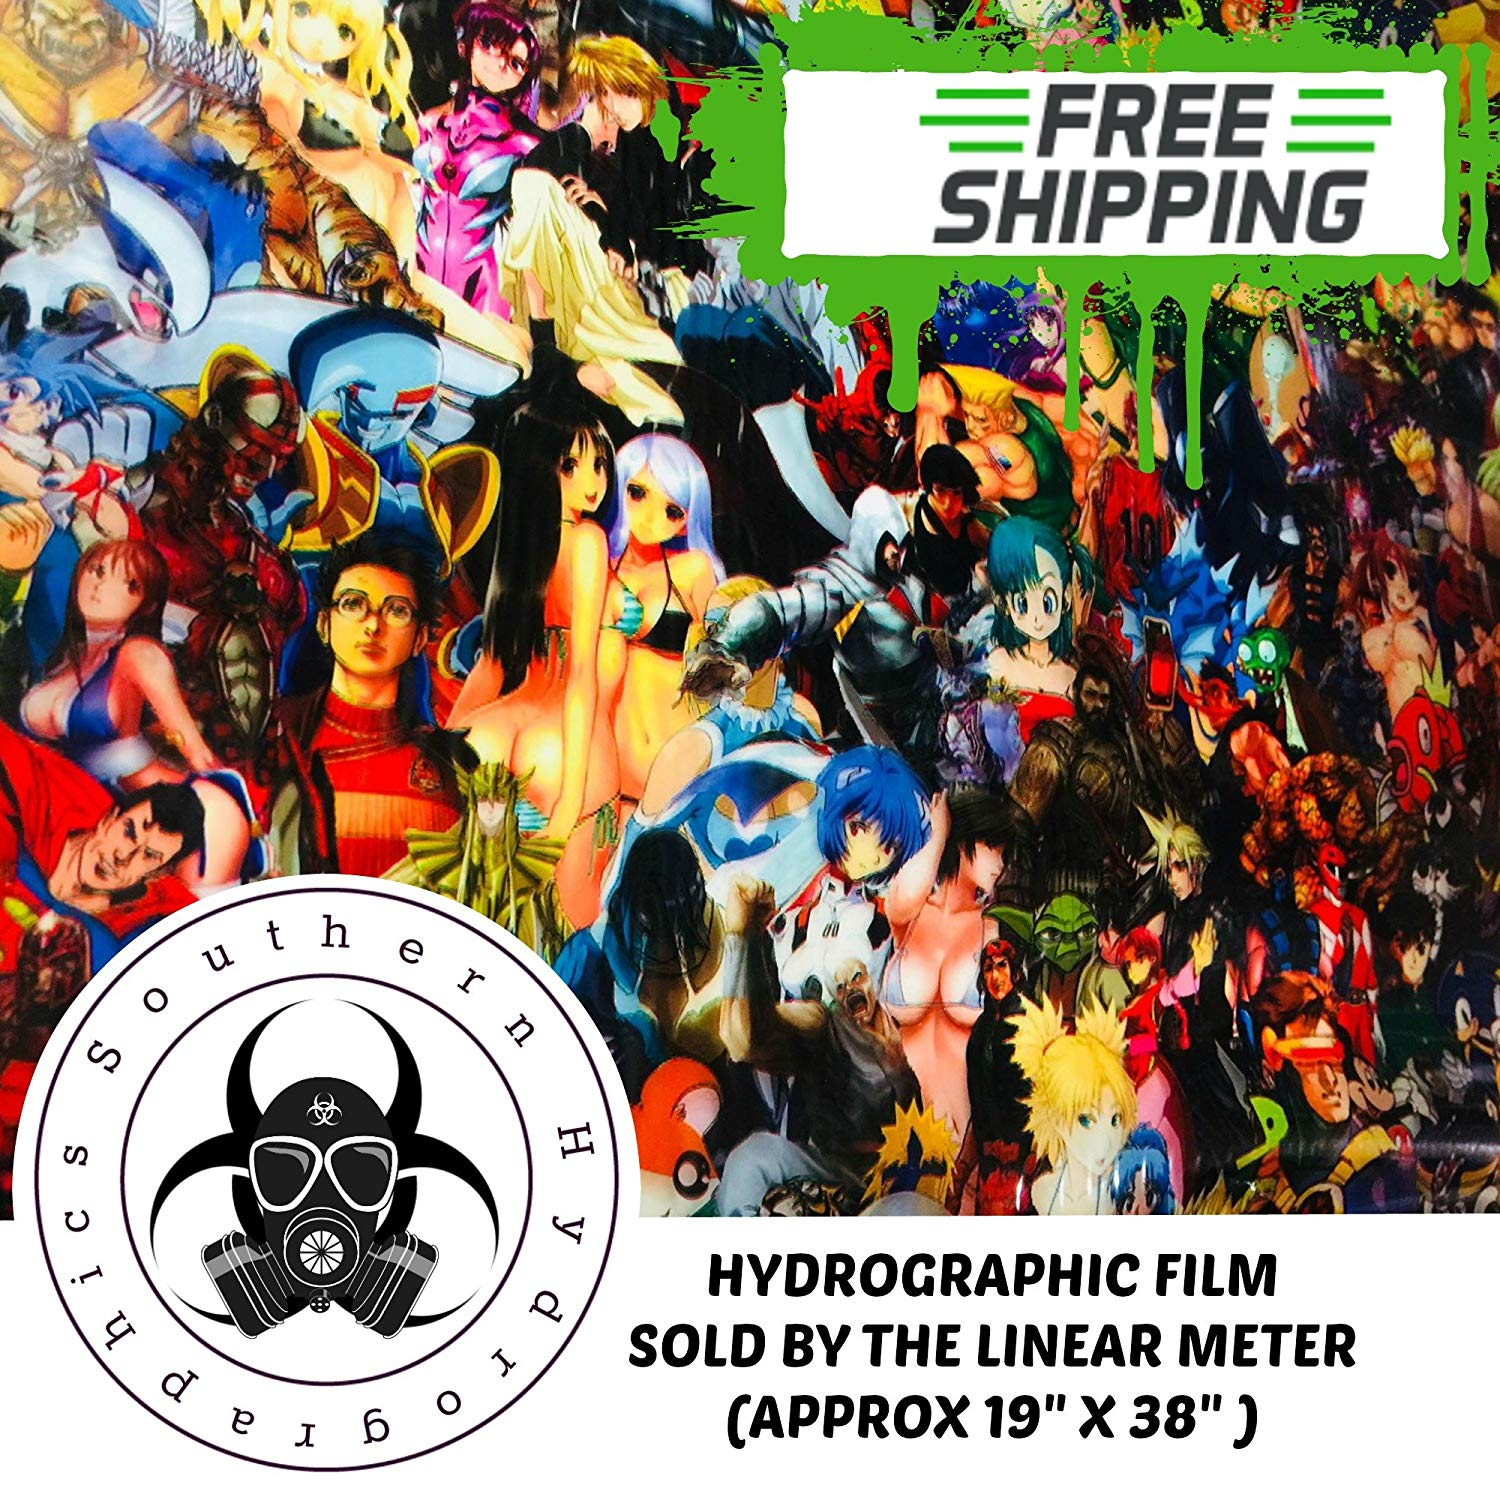 HYDROGRAPHIC WATER TRANSFER HYDRO DIP FULL KIT ACTIVATOR DETECTIVE COMICS FILM